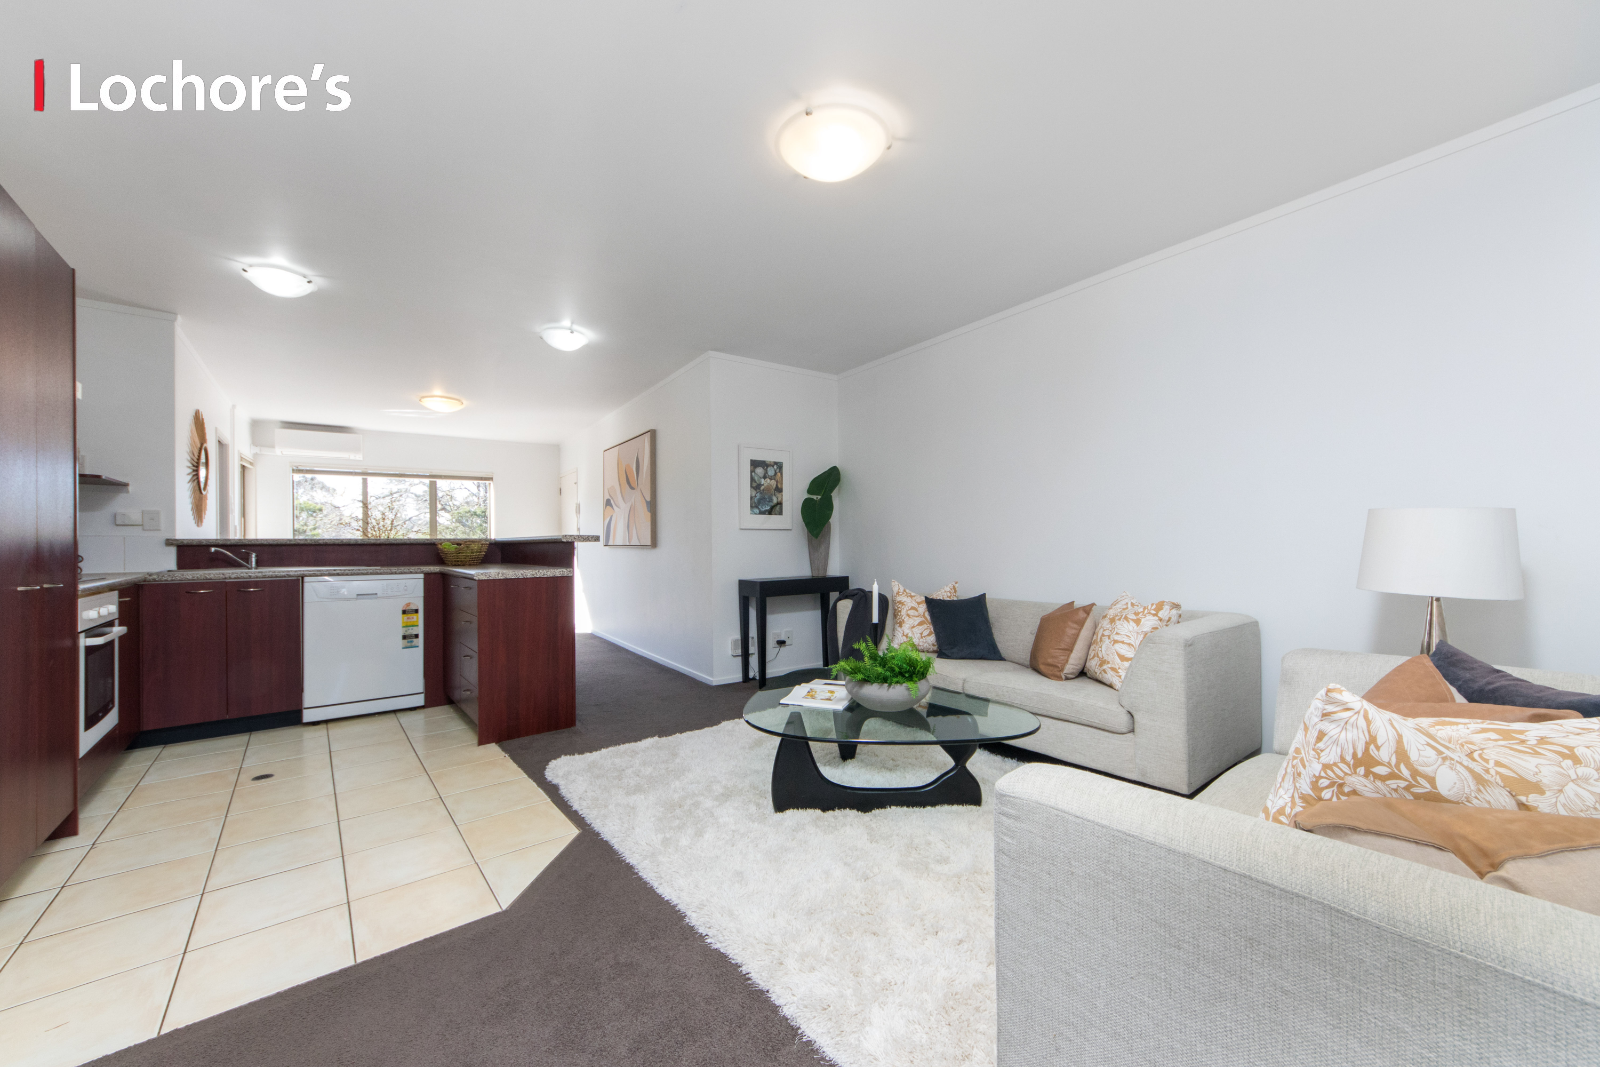 66810Open home times